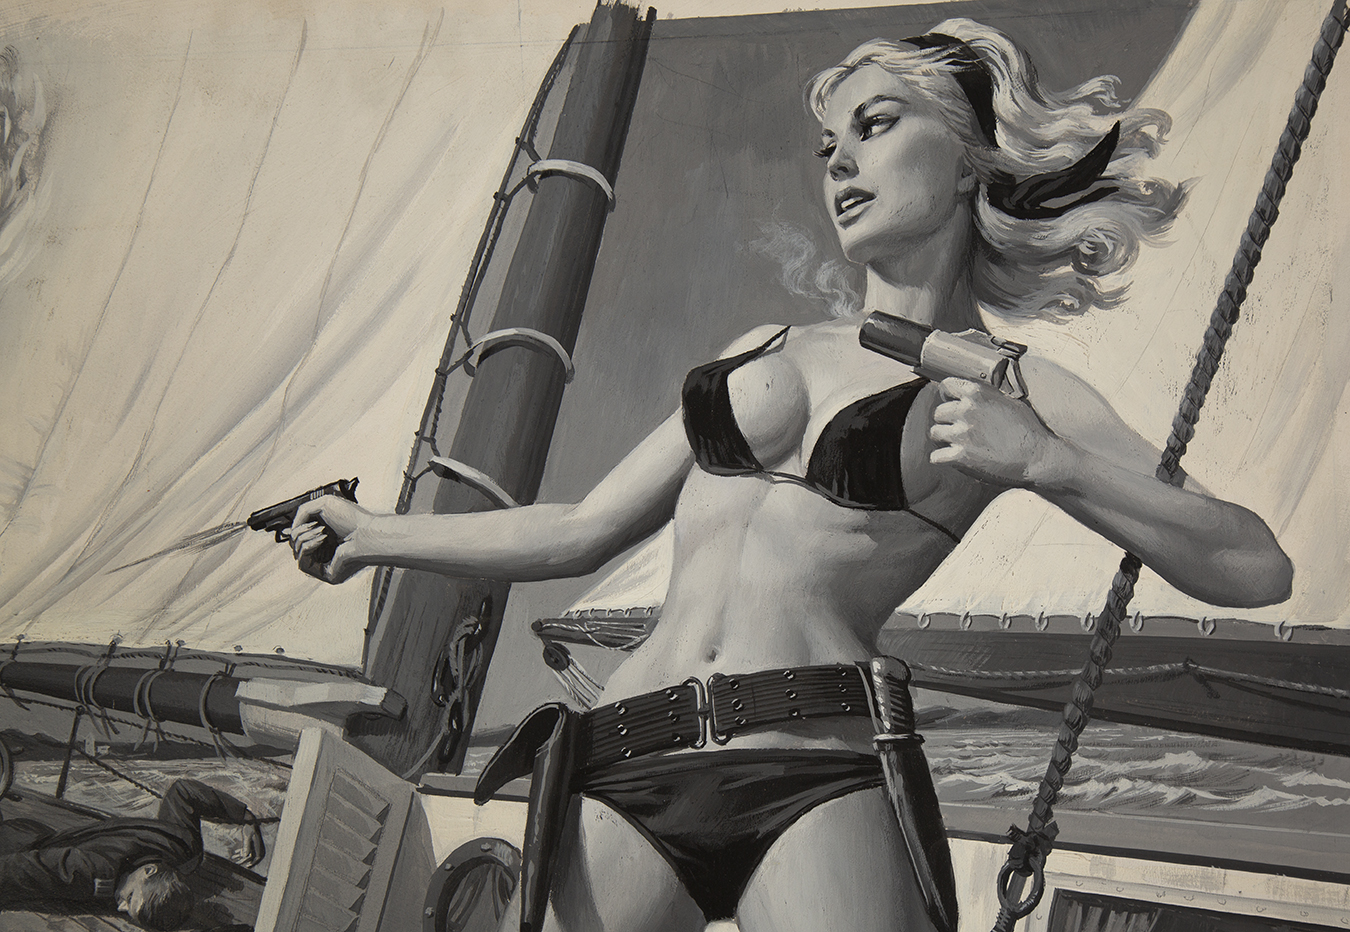 Detail view of a blonde in a bikini holding a gun in one hand and a flare gun in the other